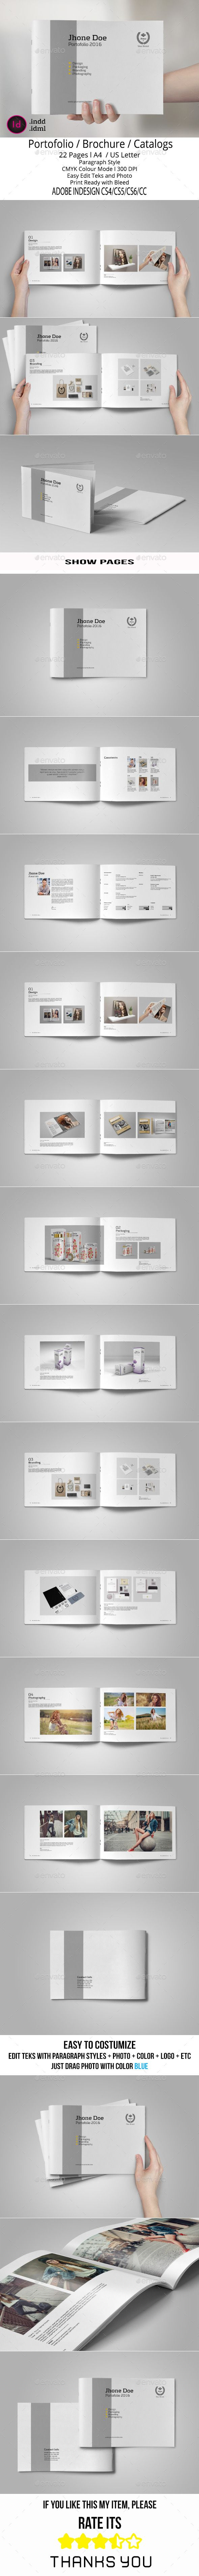 Portfolio Brochure Template #design Download: http://graphicriver.net/item/portfolio-brochure-template/11445605?ref=ksioks